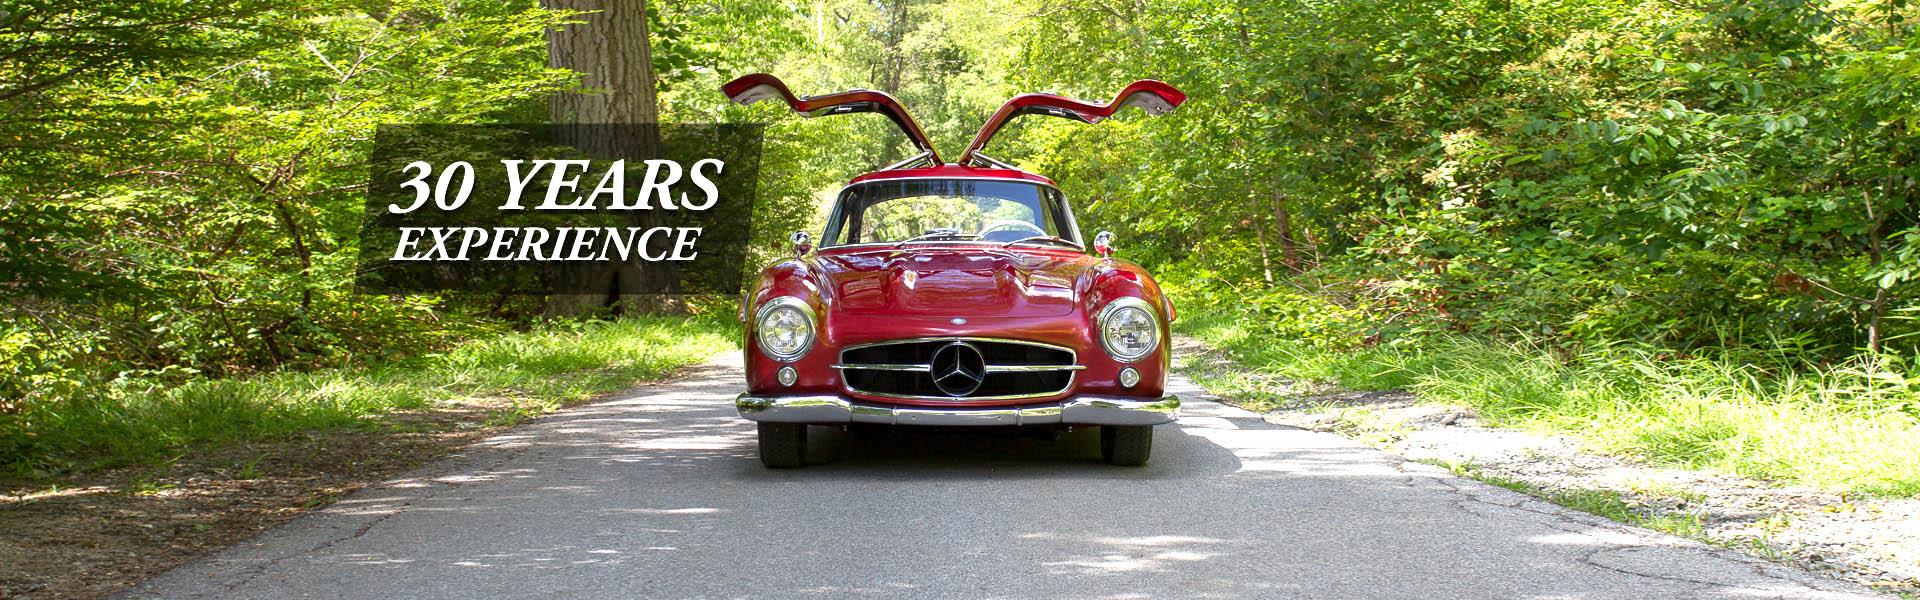 Classic Car Dealers We Buy Classic Cars Gullwing Motor Cars - Sell classic cars